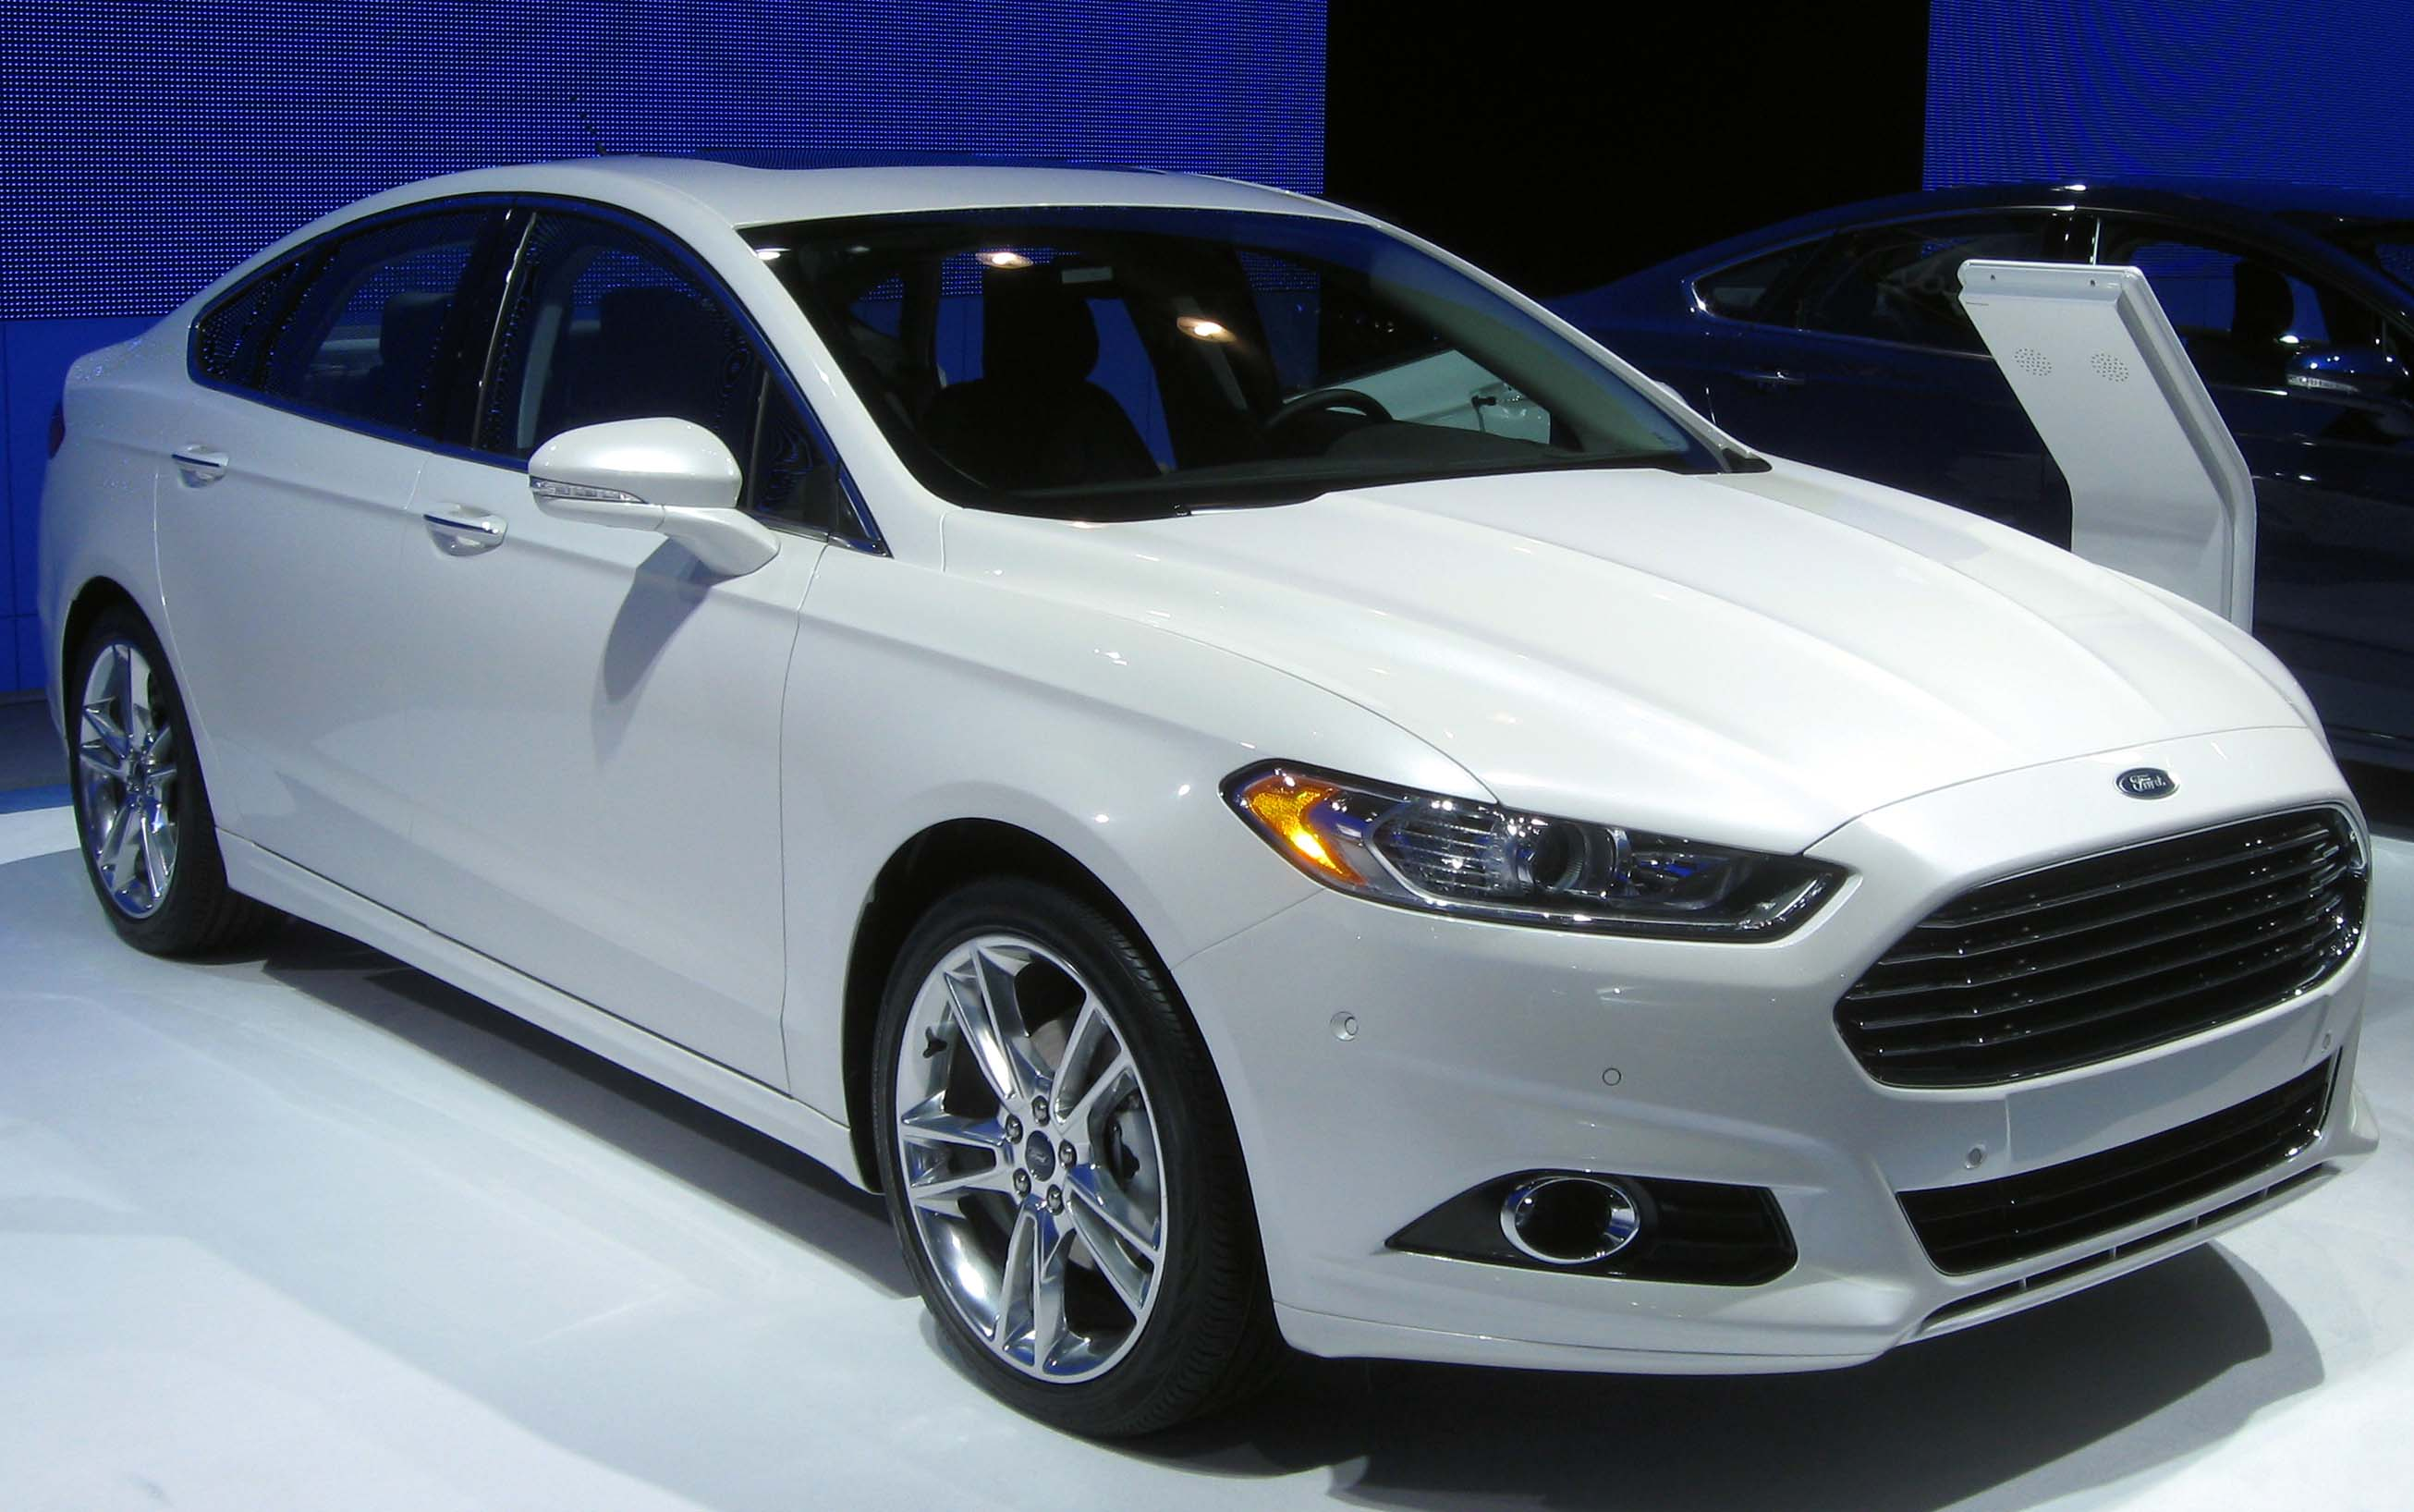 ford fusion images #1